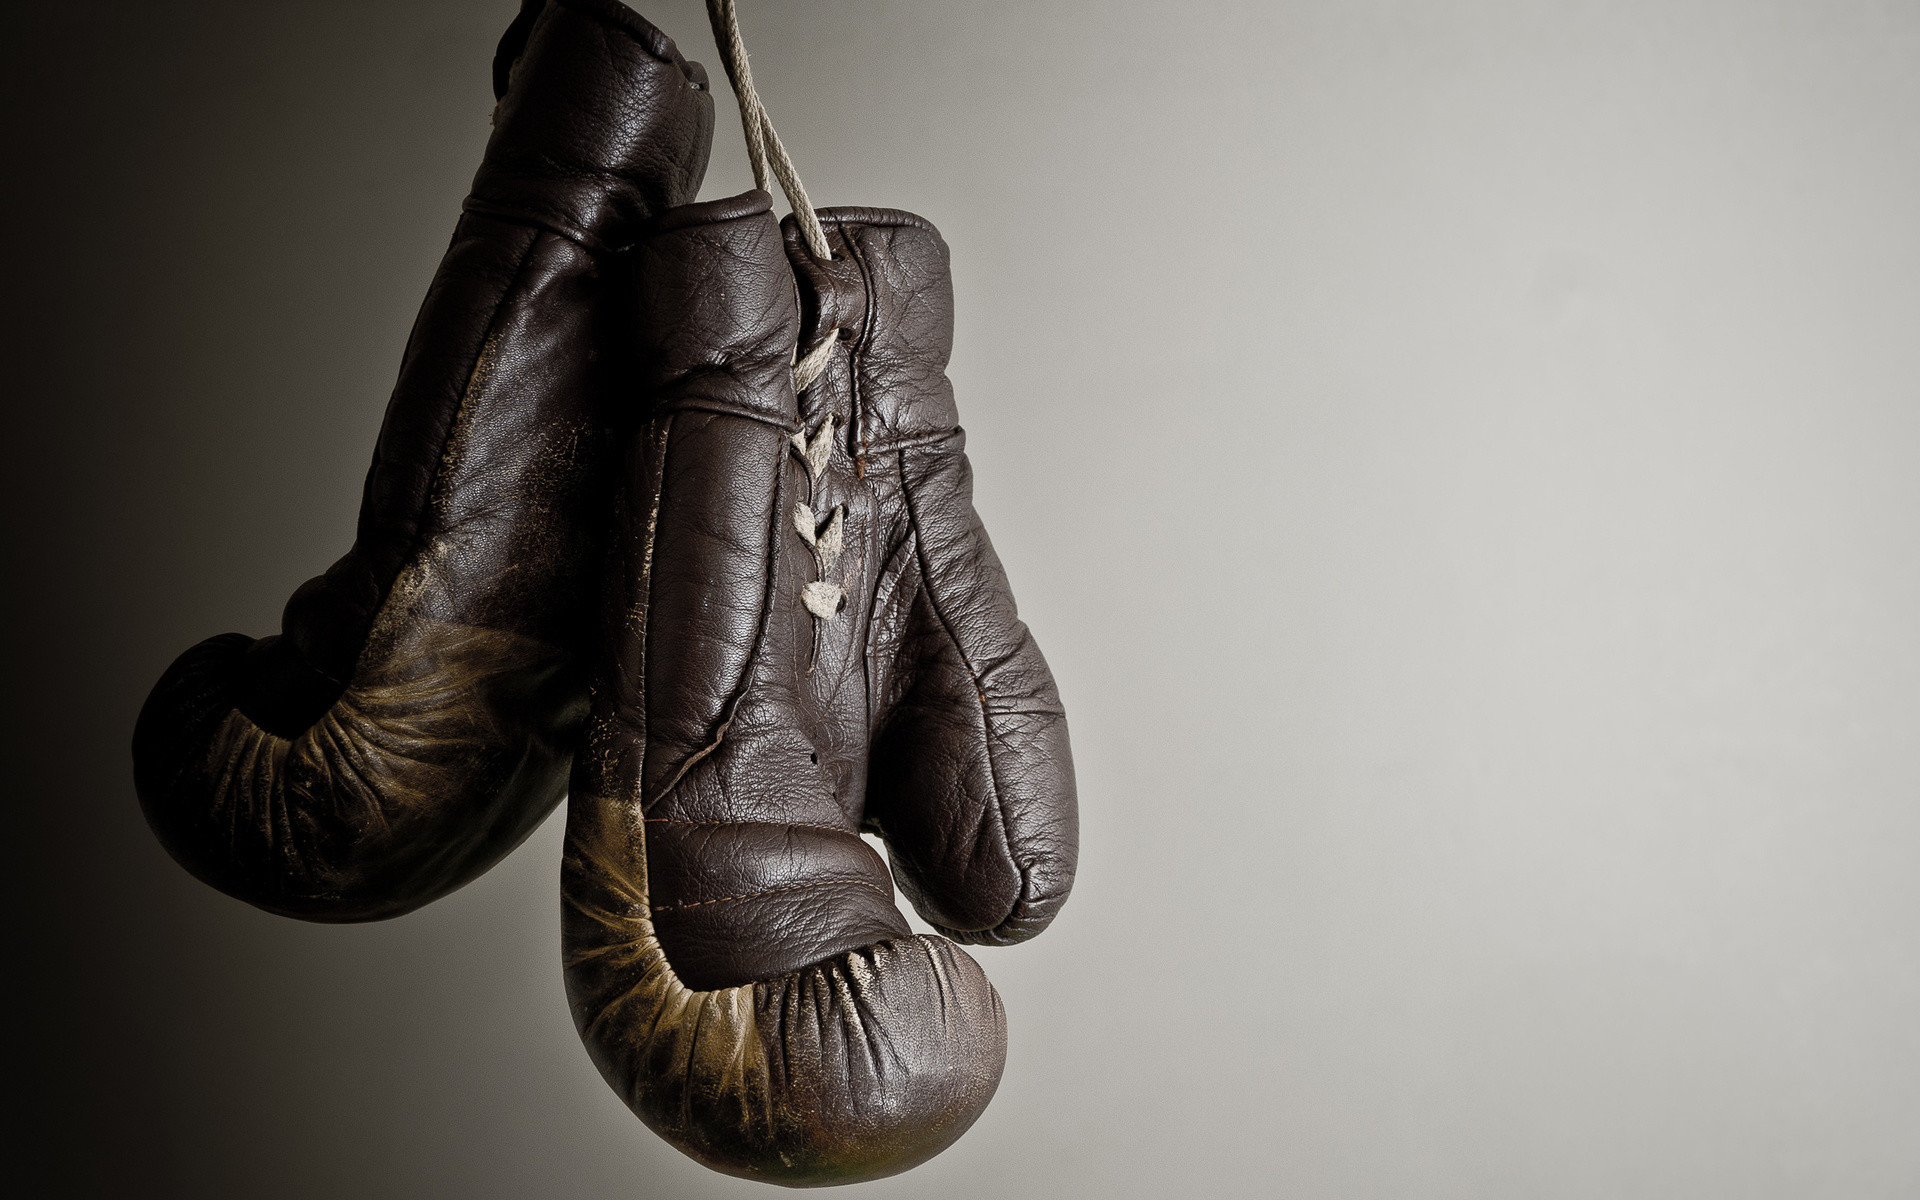 Boxer In Boxing Ring wallpapers   HD Wallpapers   Pinterest   Wallpaper and  Hd wallpaper